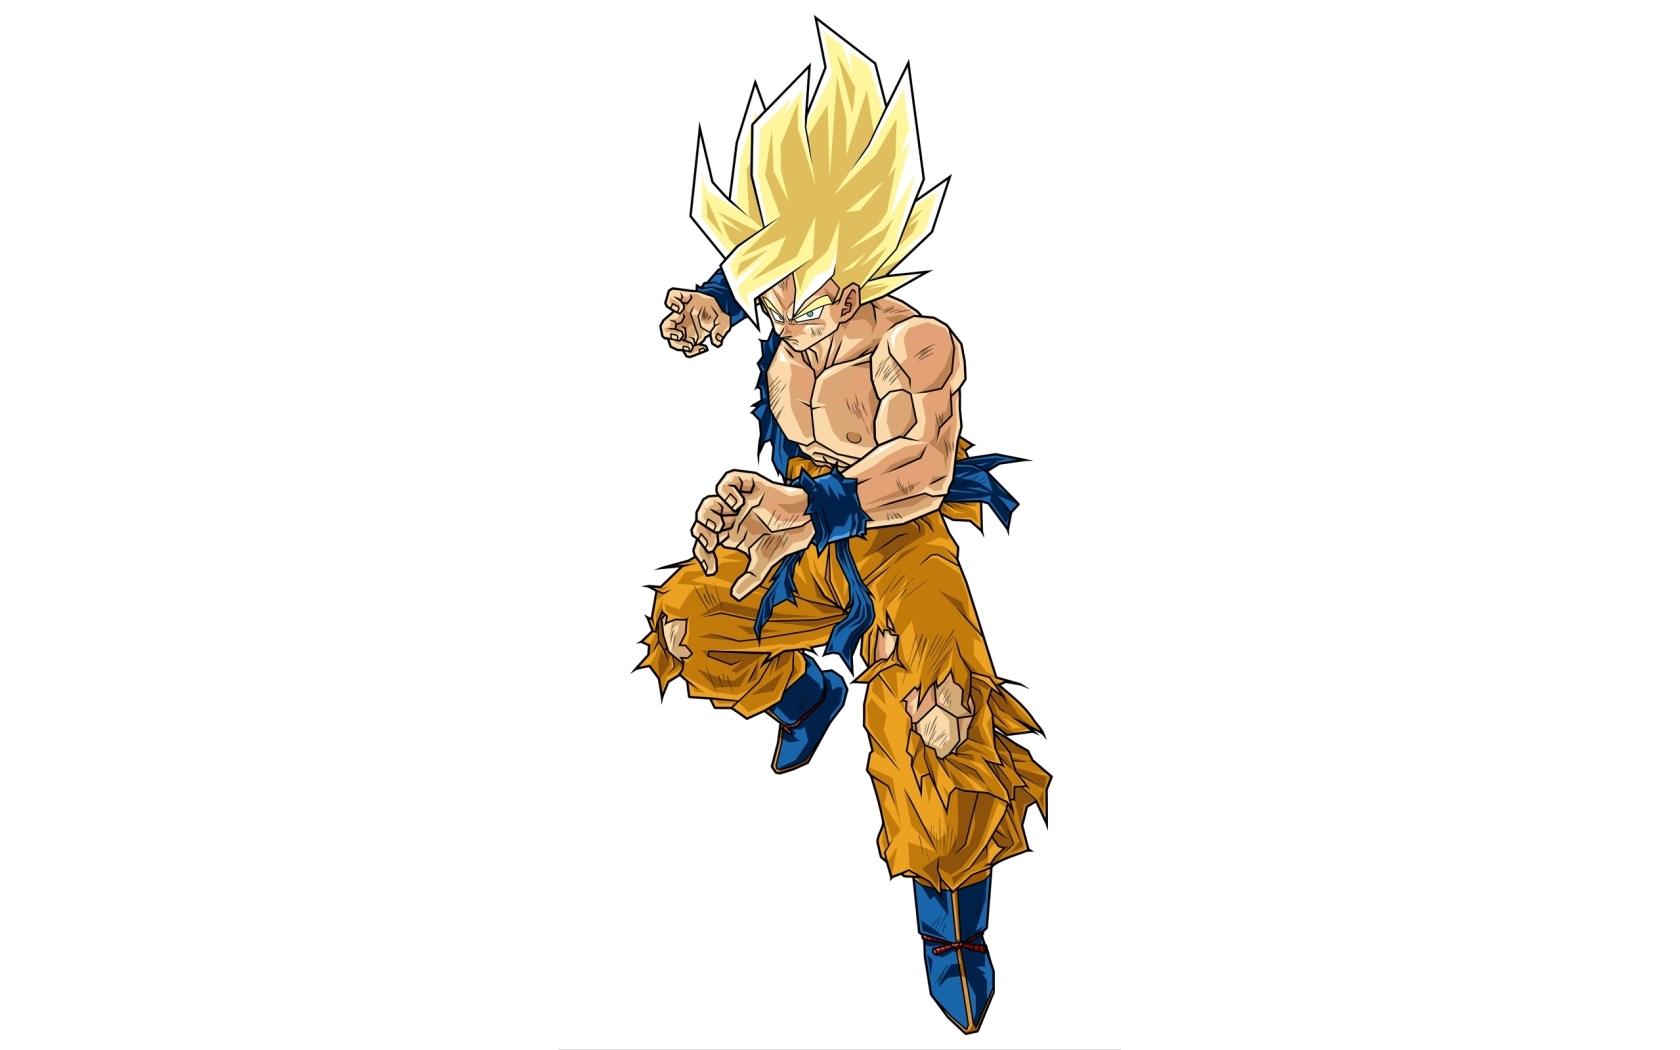 - Widescreen Dragon ball Z Wallpapers of Goku, Vegeta, and Trunks